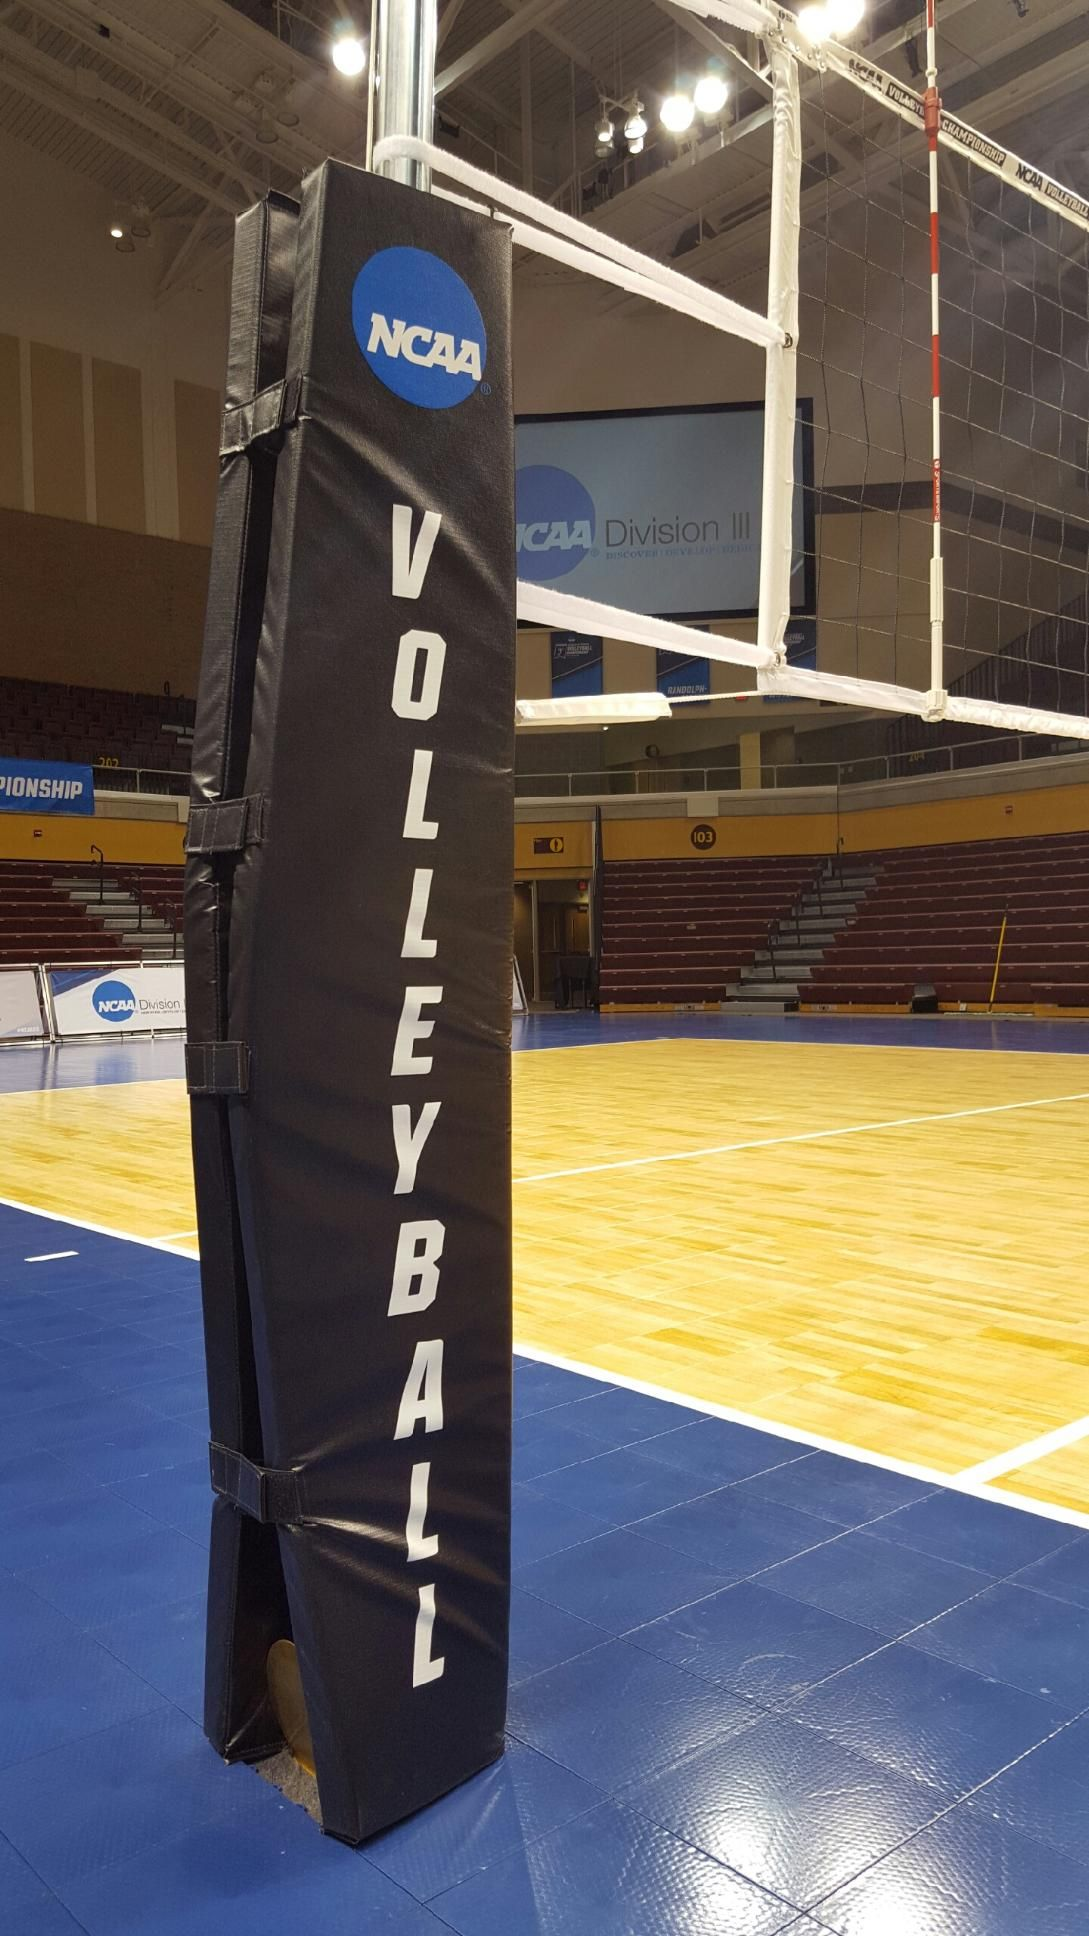 Ncaa Championship Volleyball Custom Volleyball Pole Pads Volleyball Net Volleyball Volleyball Equipment